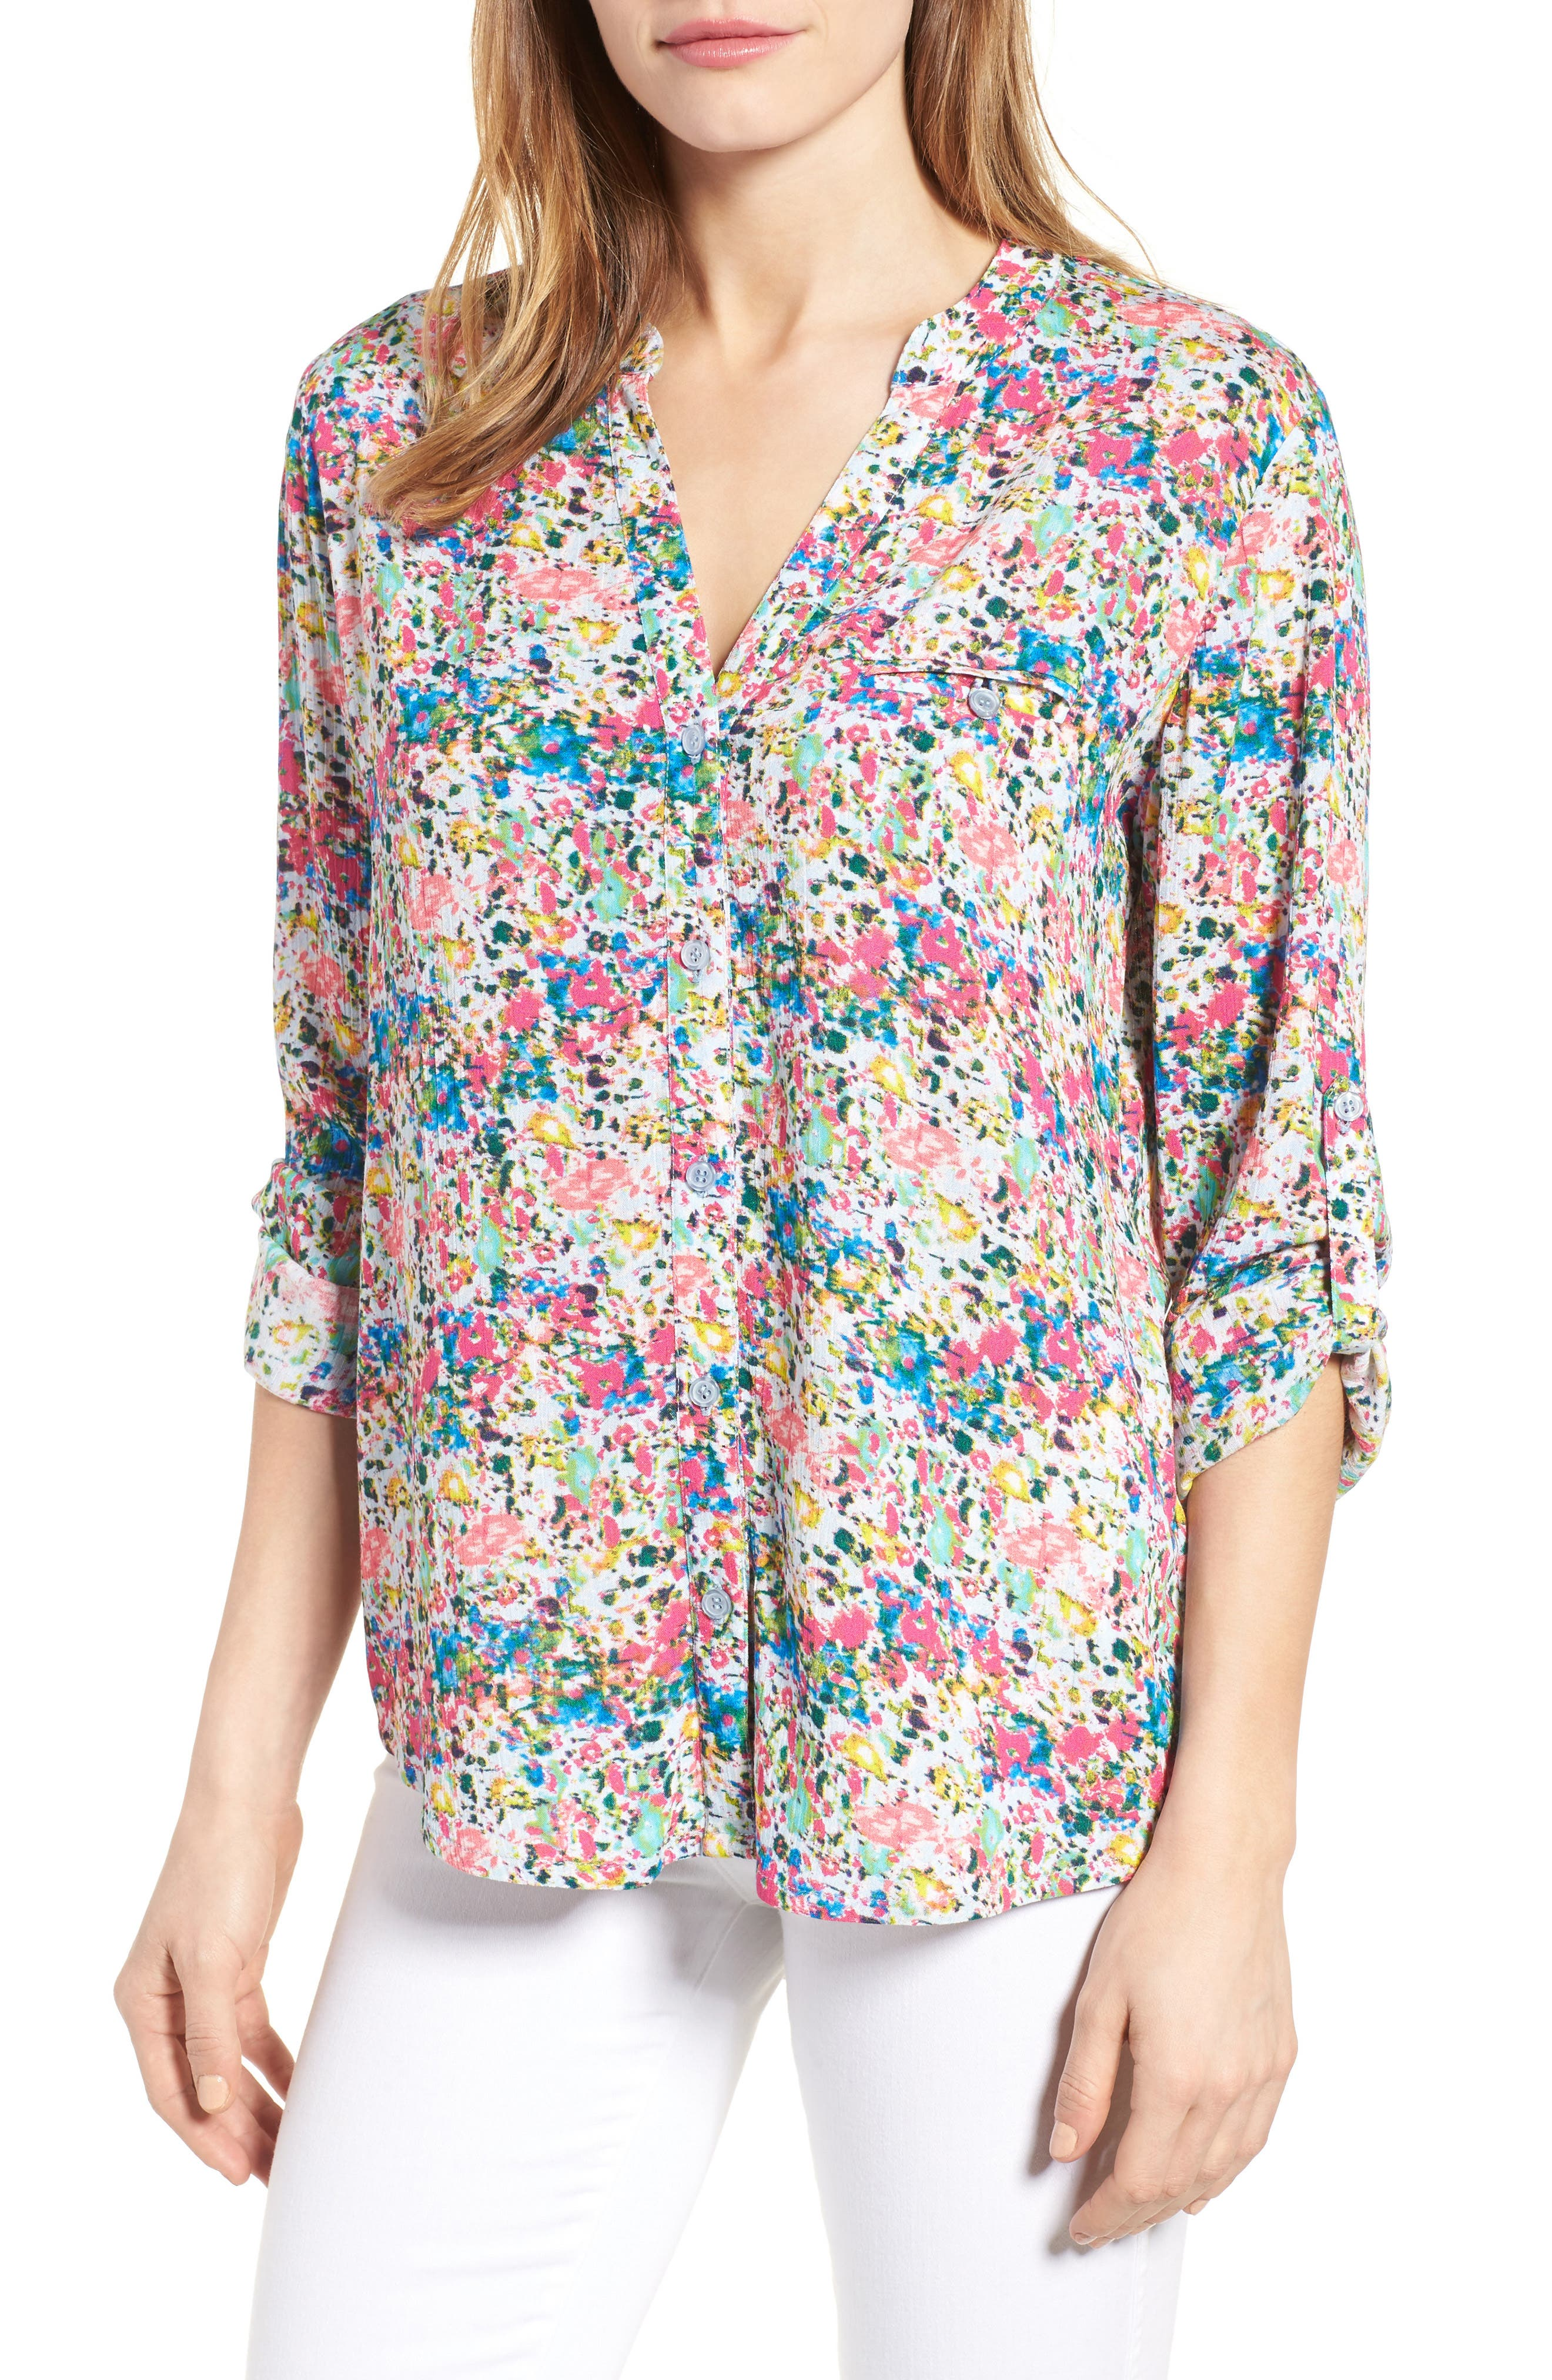 Alternate Image 1 Selected - KUT from the Kloth 'Jasmine' Floral Print Roll Sleeve Blouse